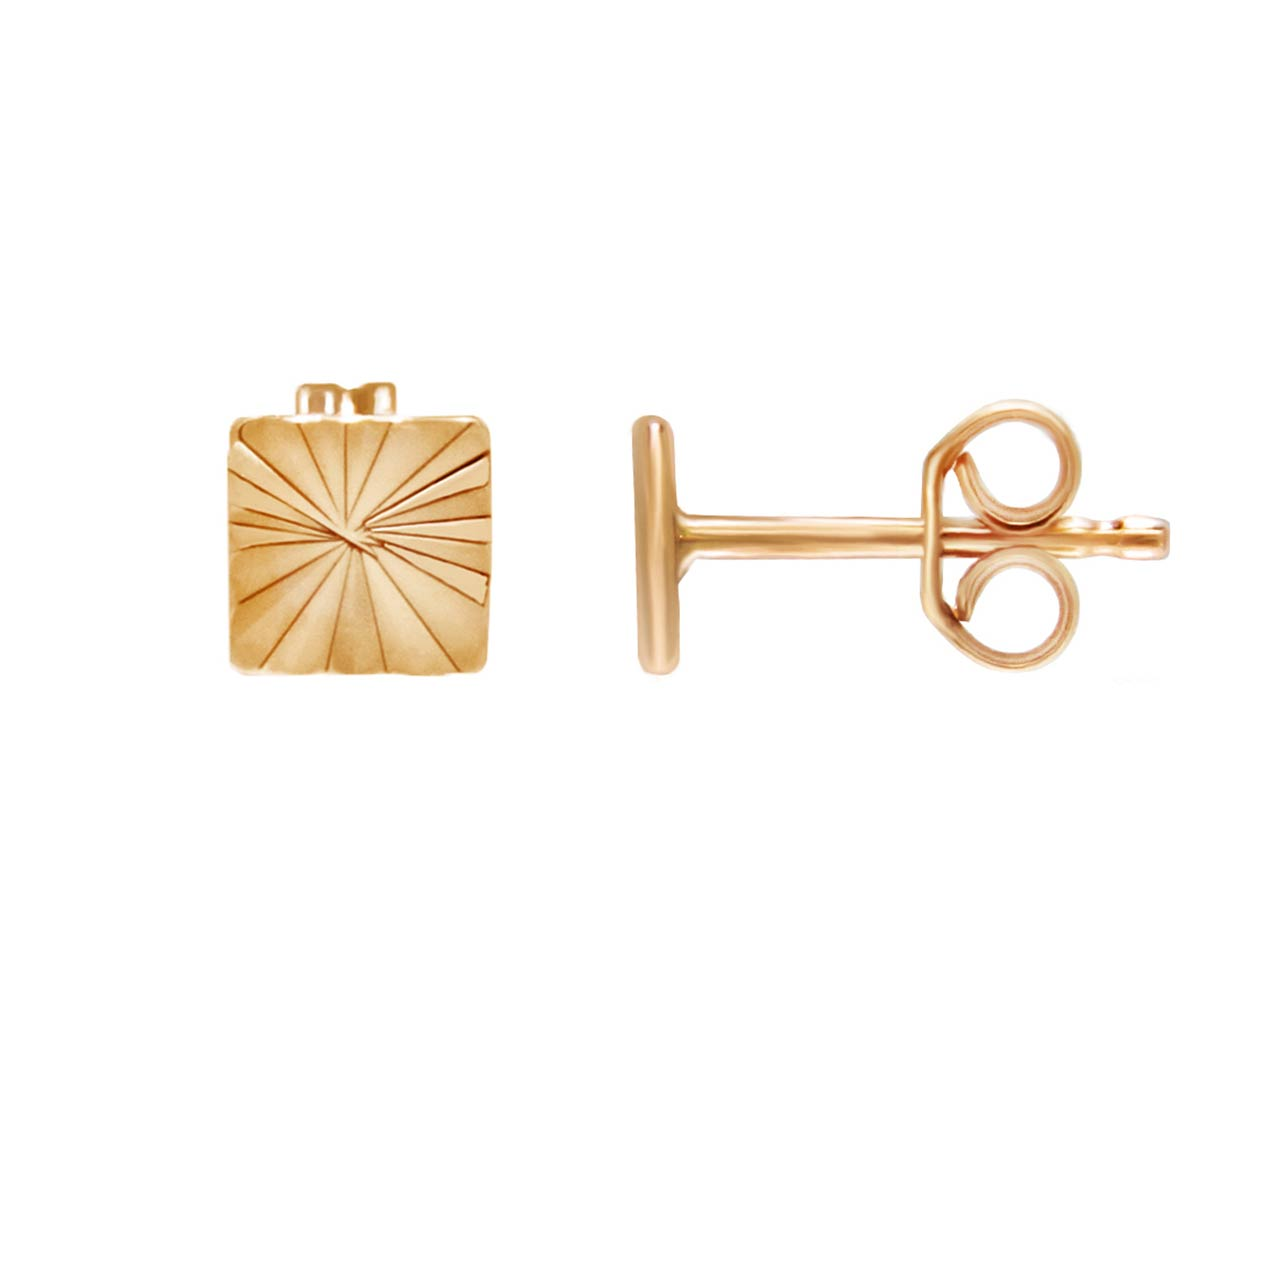 Square stud earrings 1